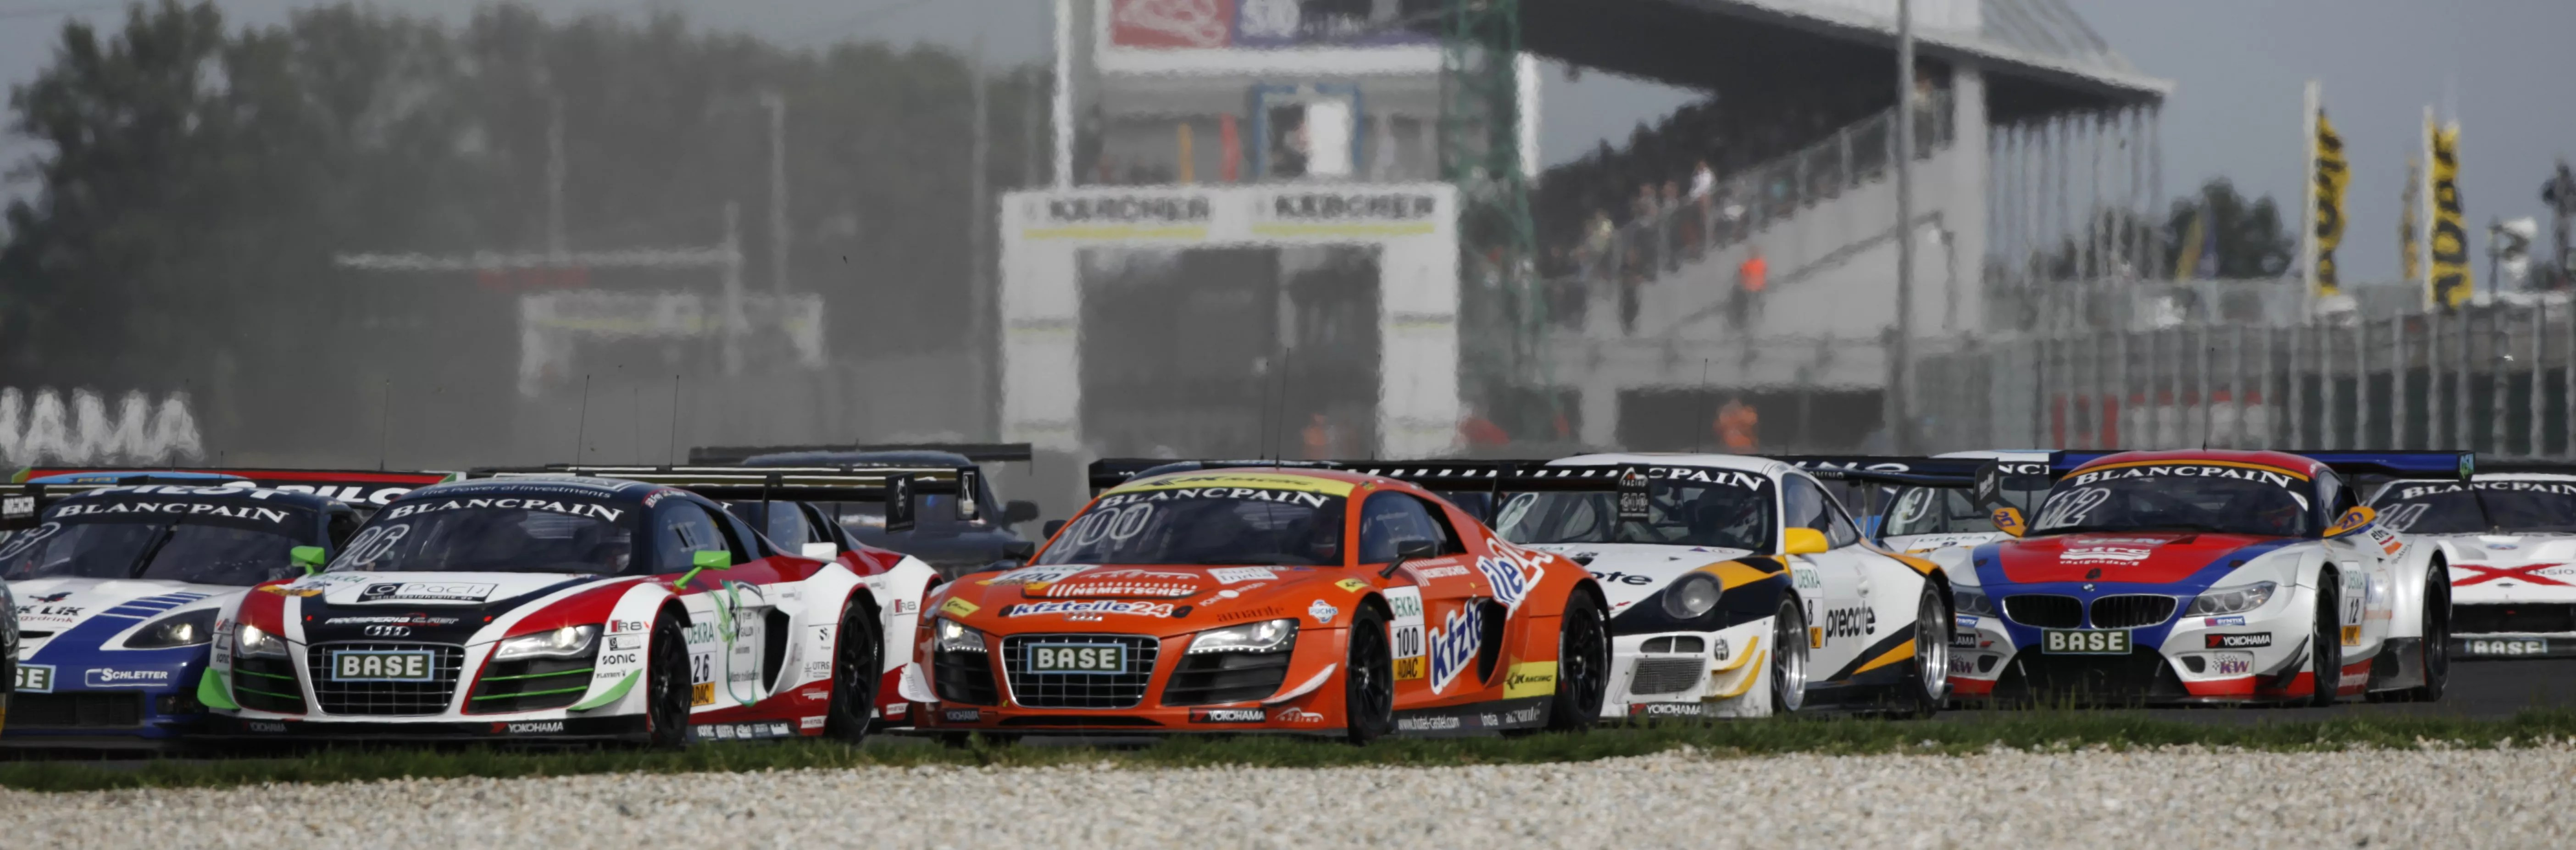 Warm-up for the 2014 ADAC GT Masters